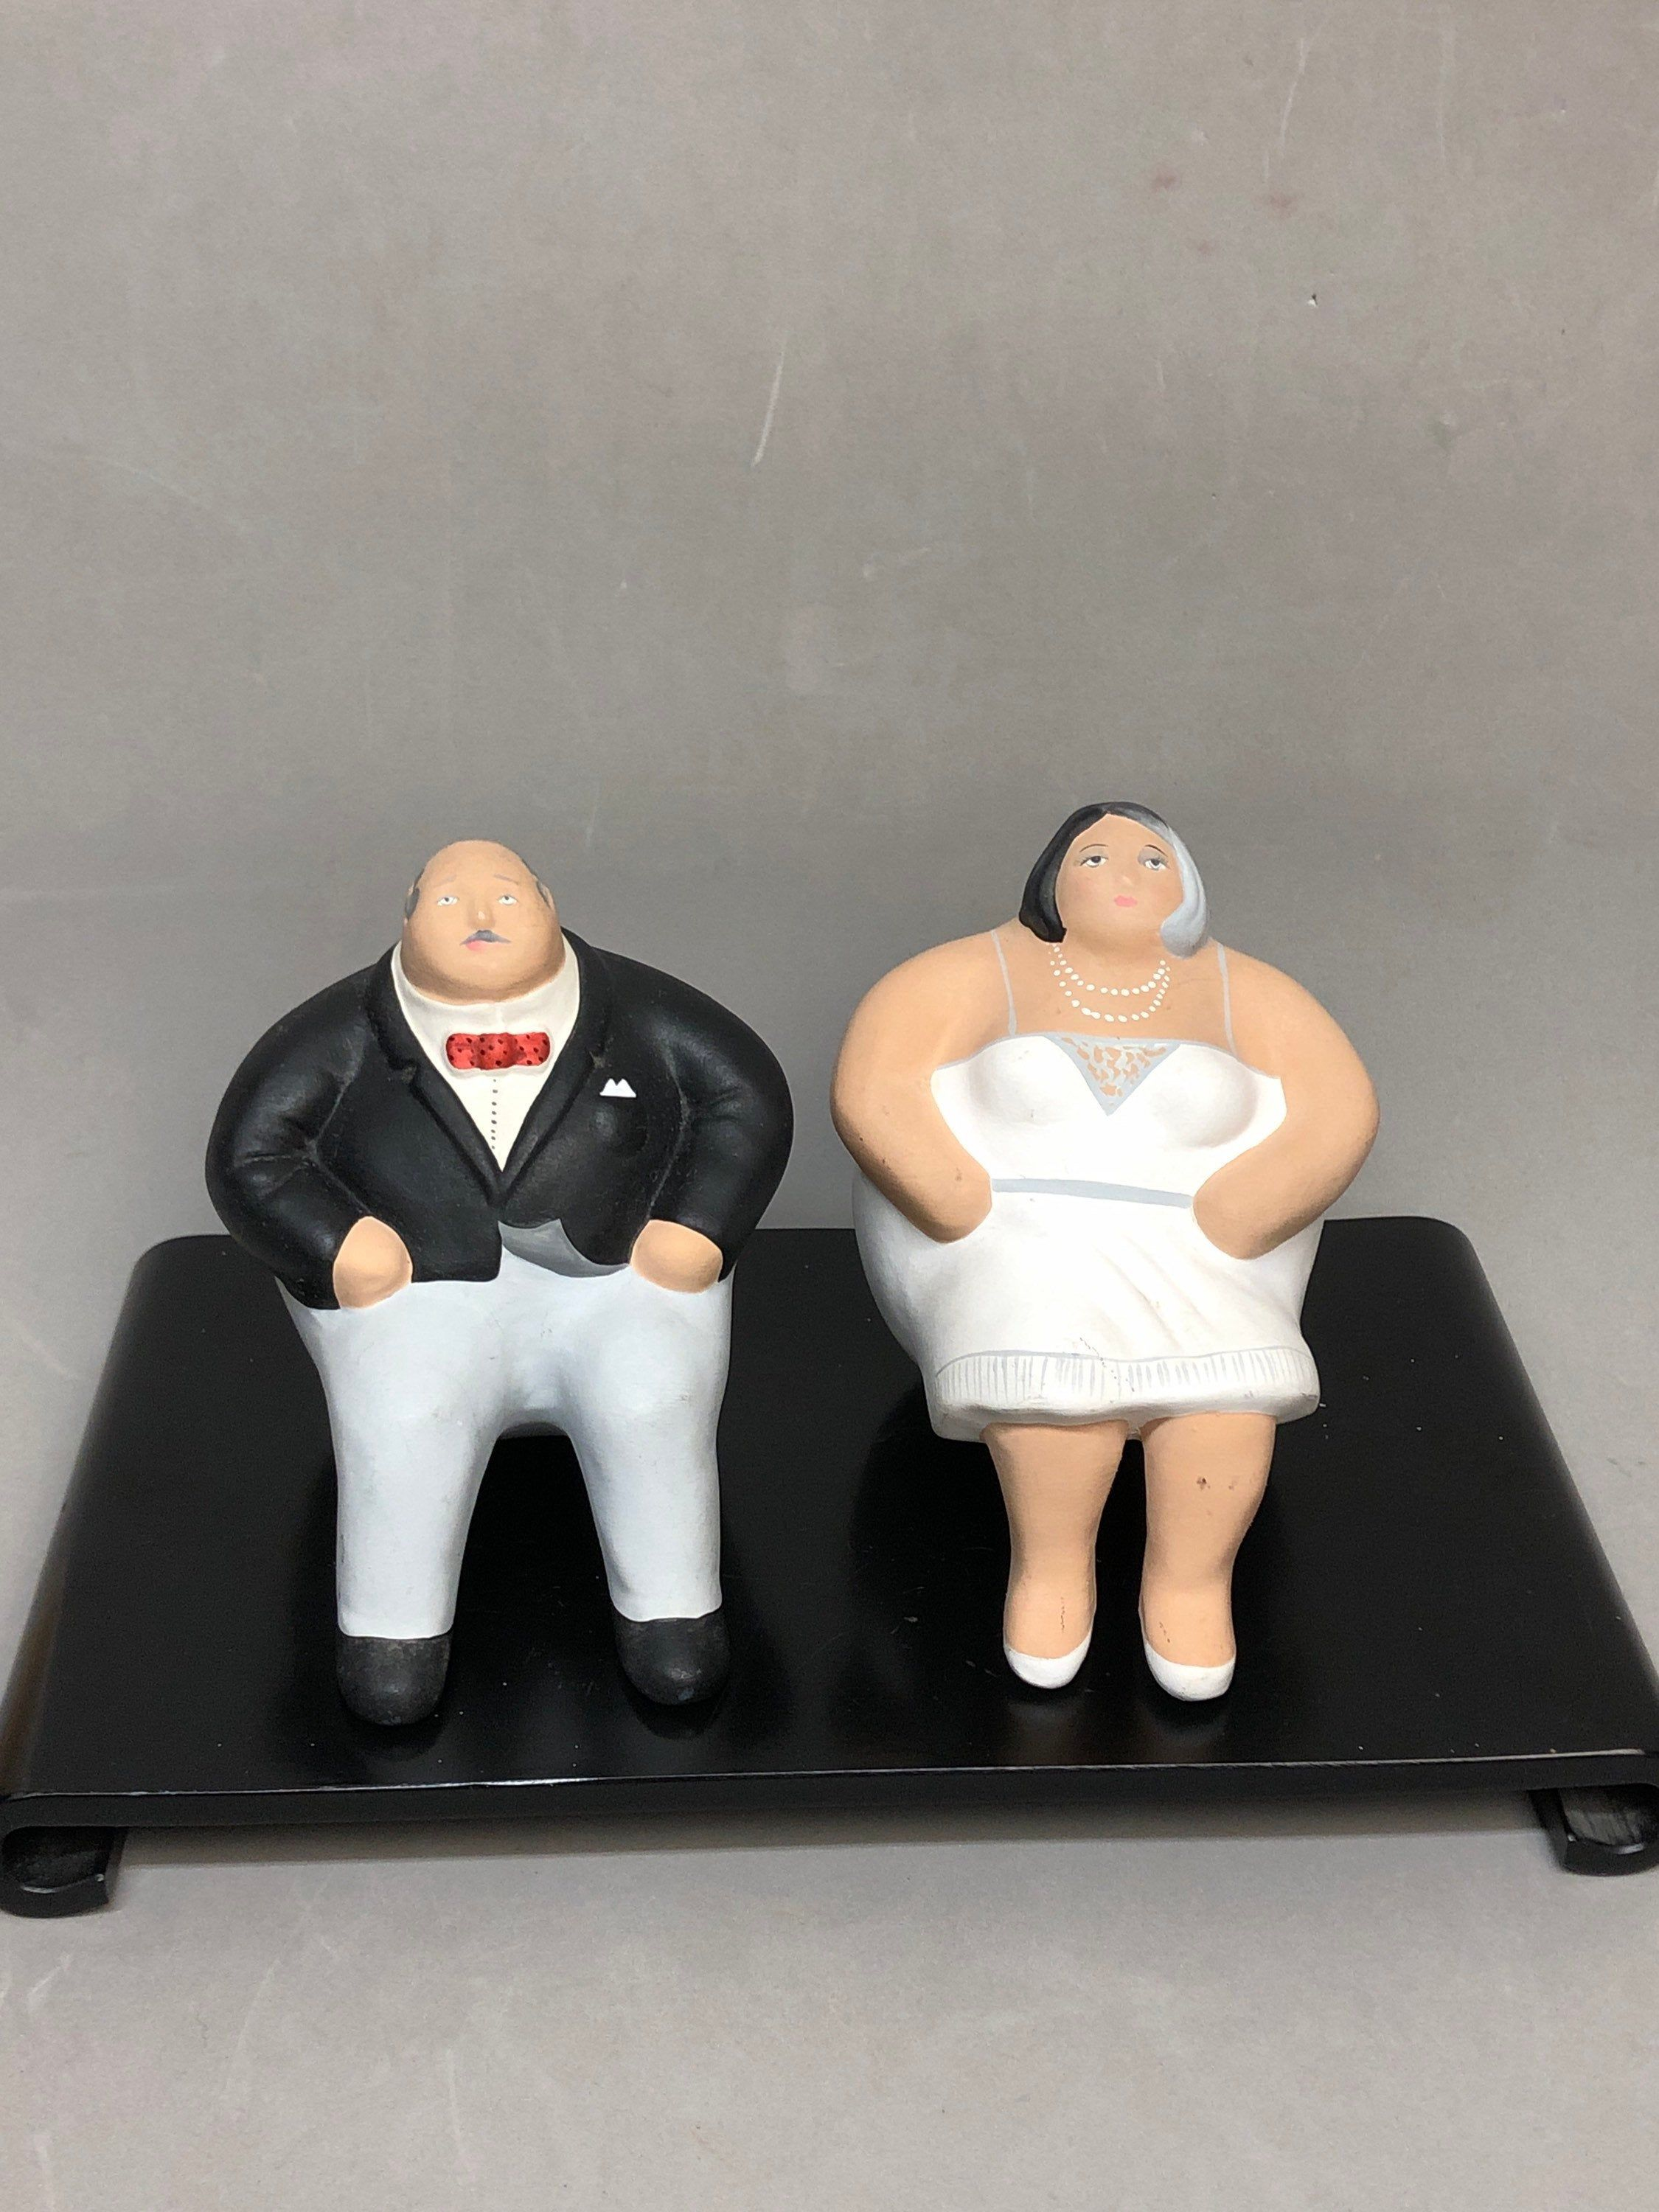 Pin On Figurines